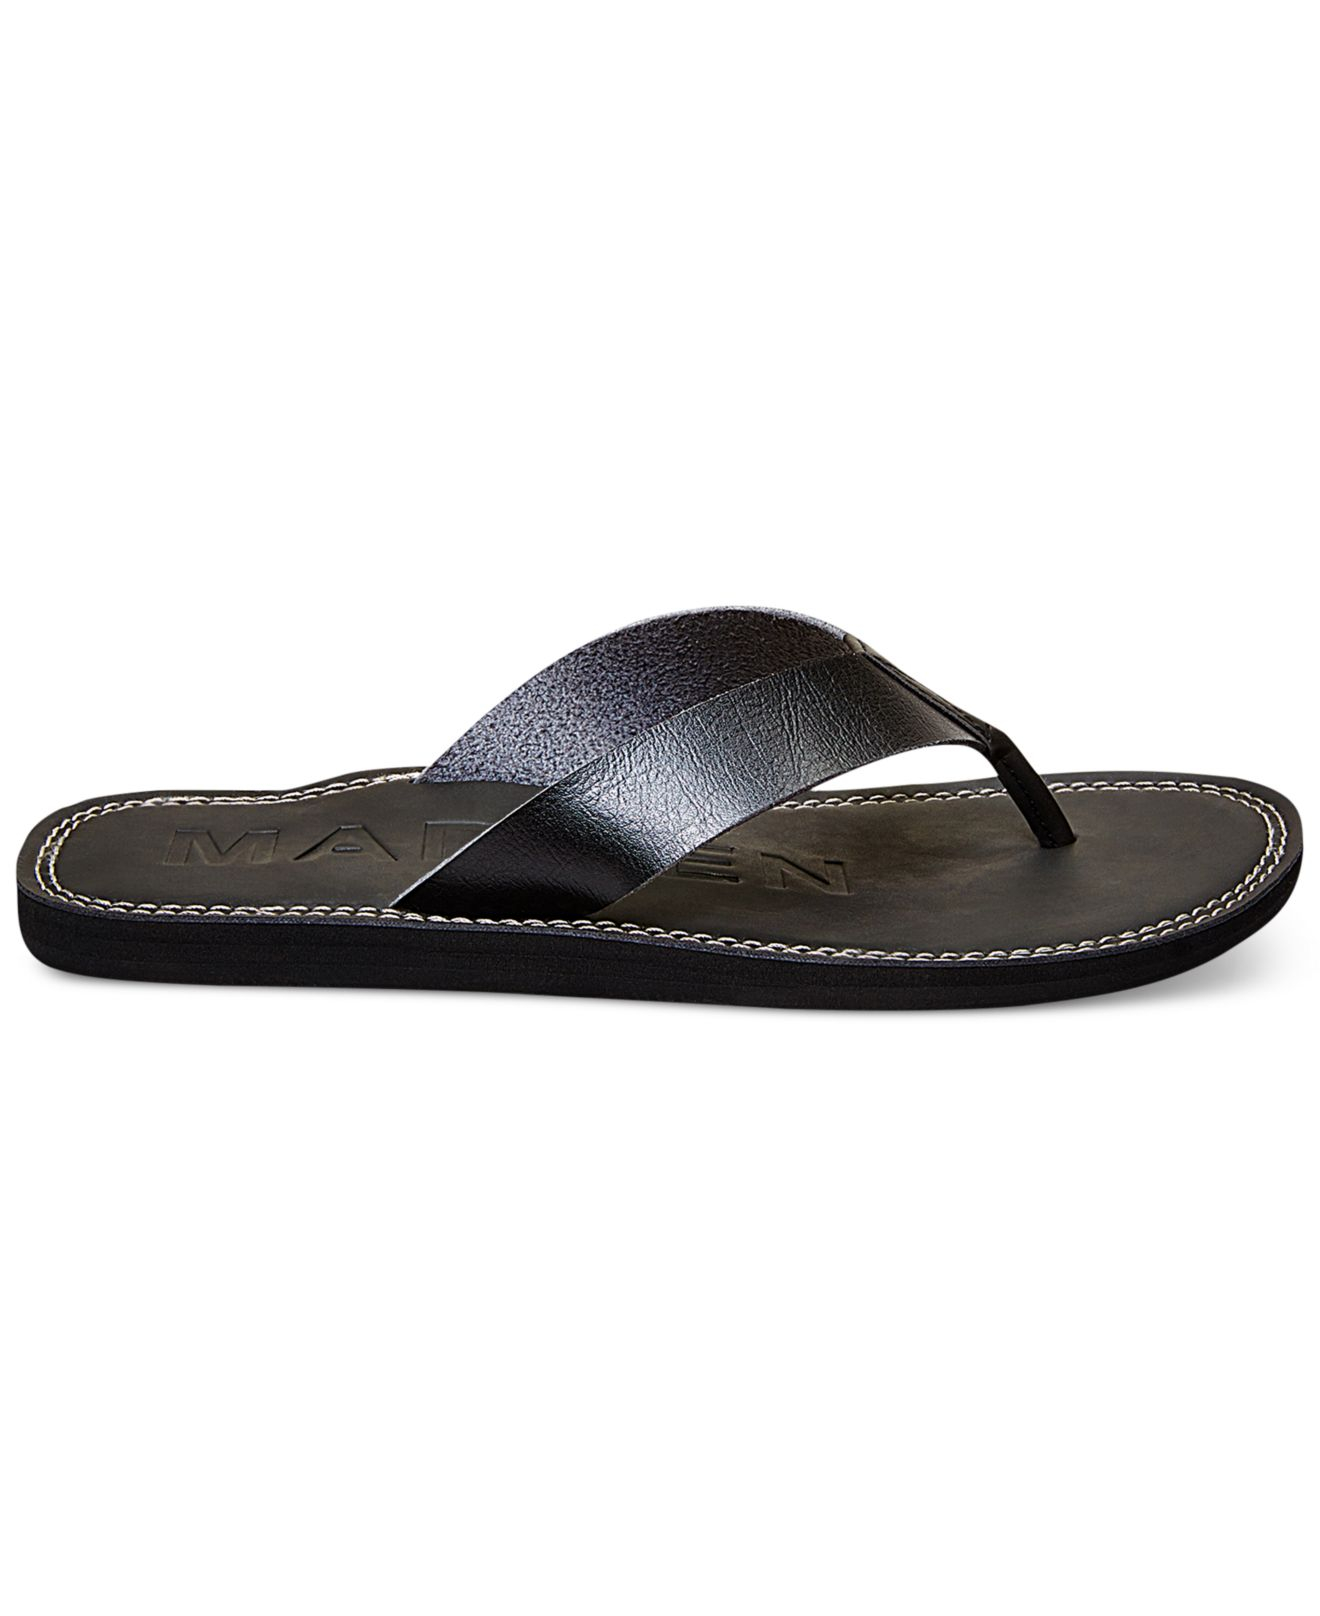 Rachel Shoes Oakley Black Flip Flops Sandals